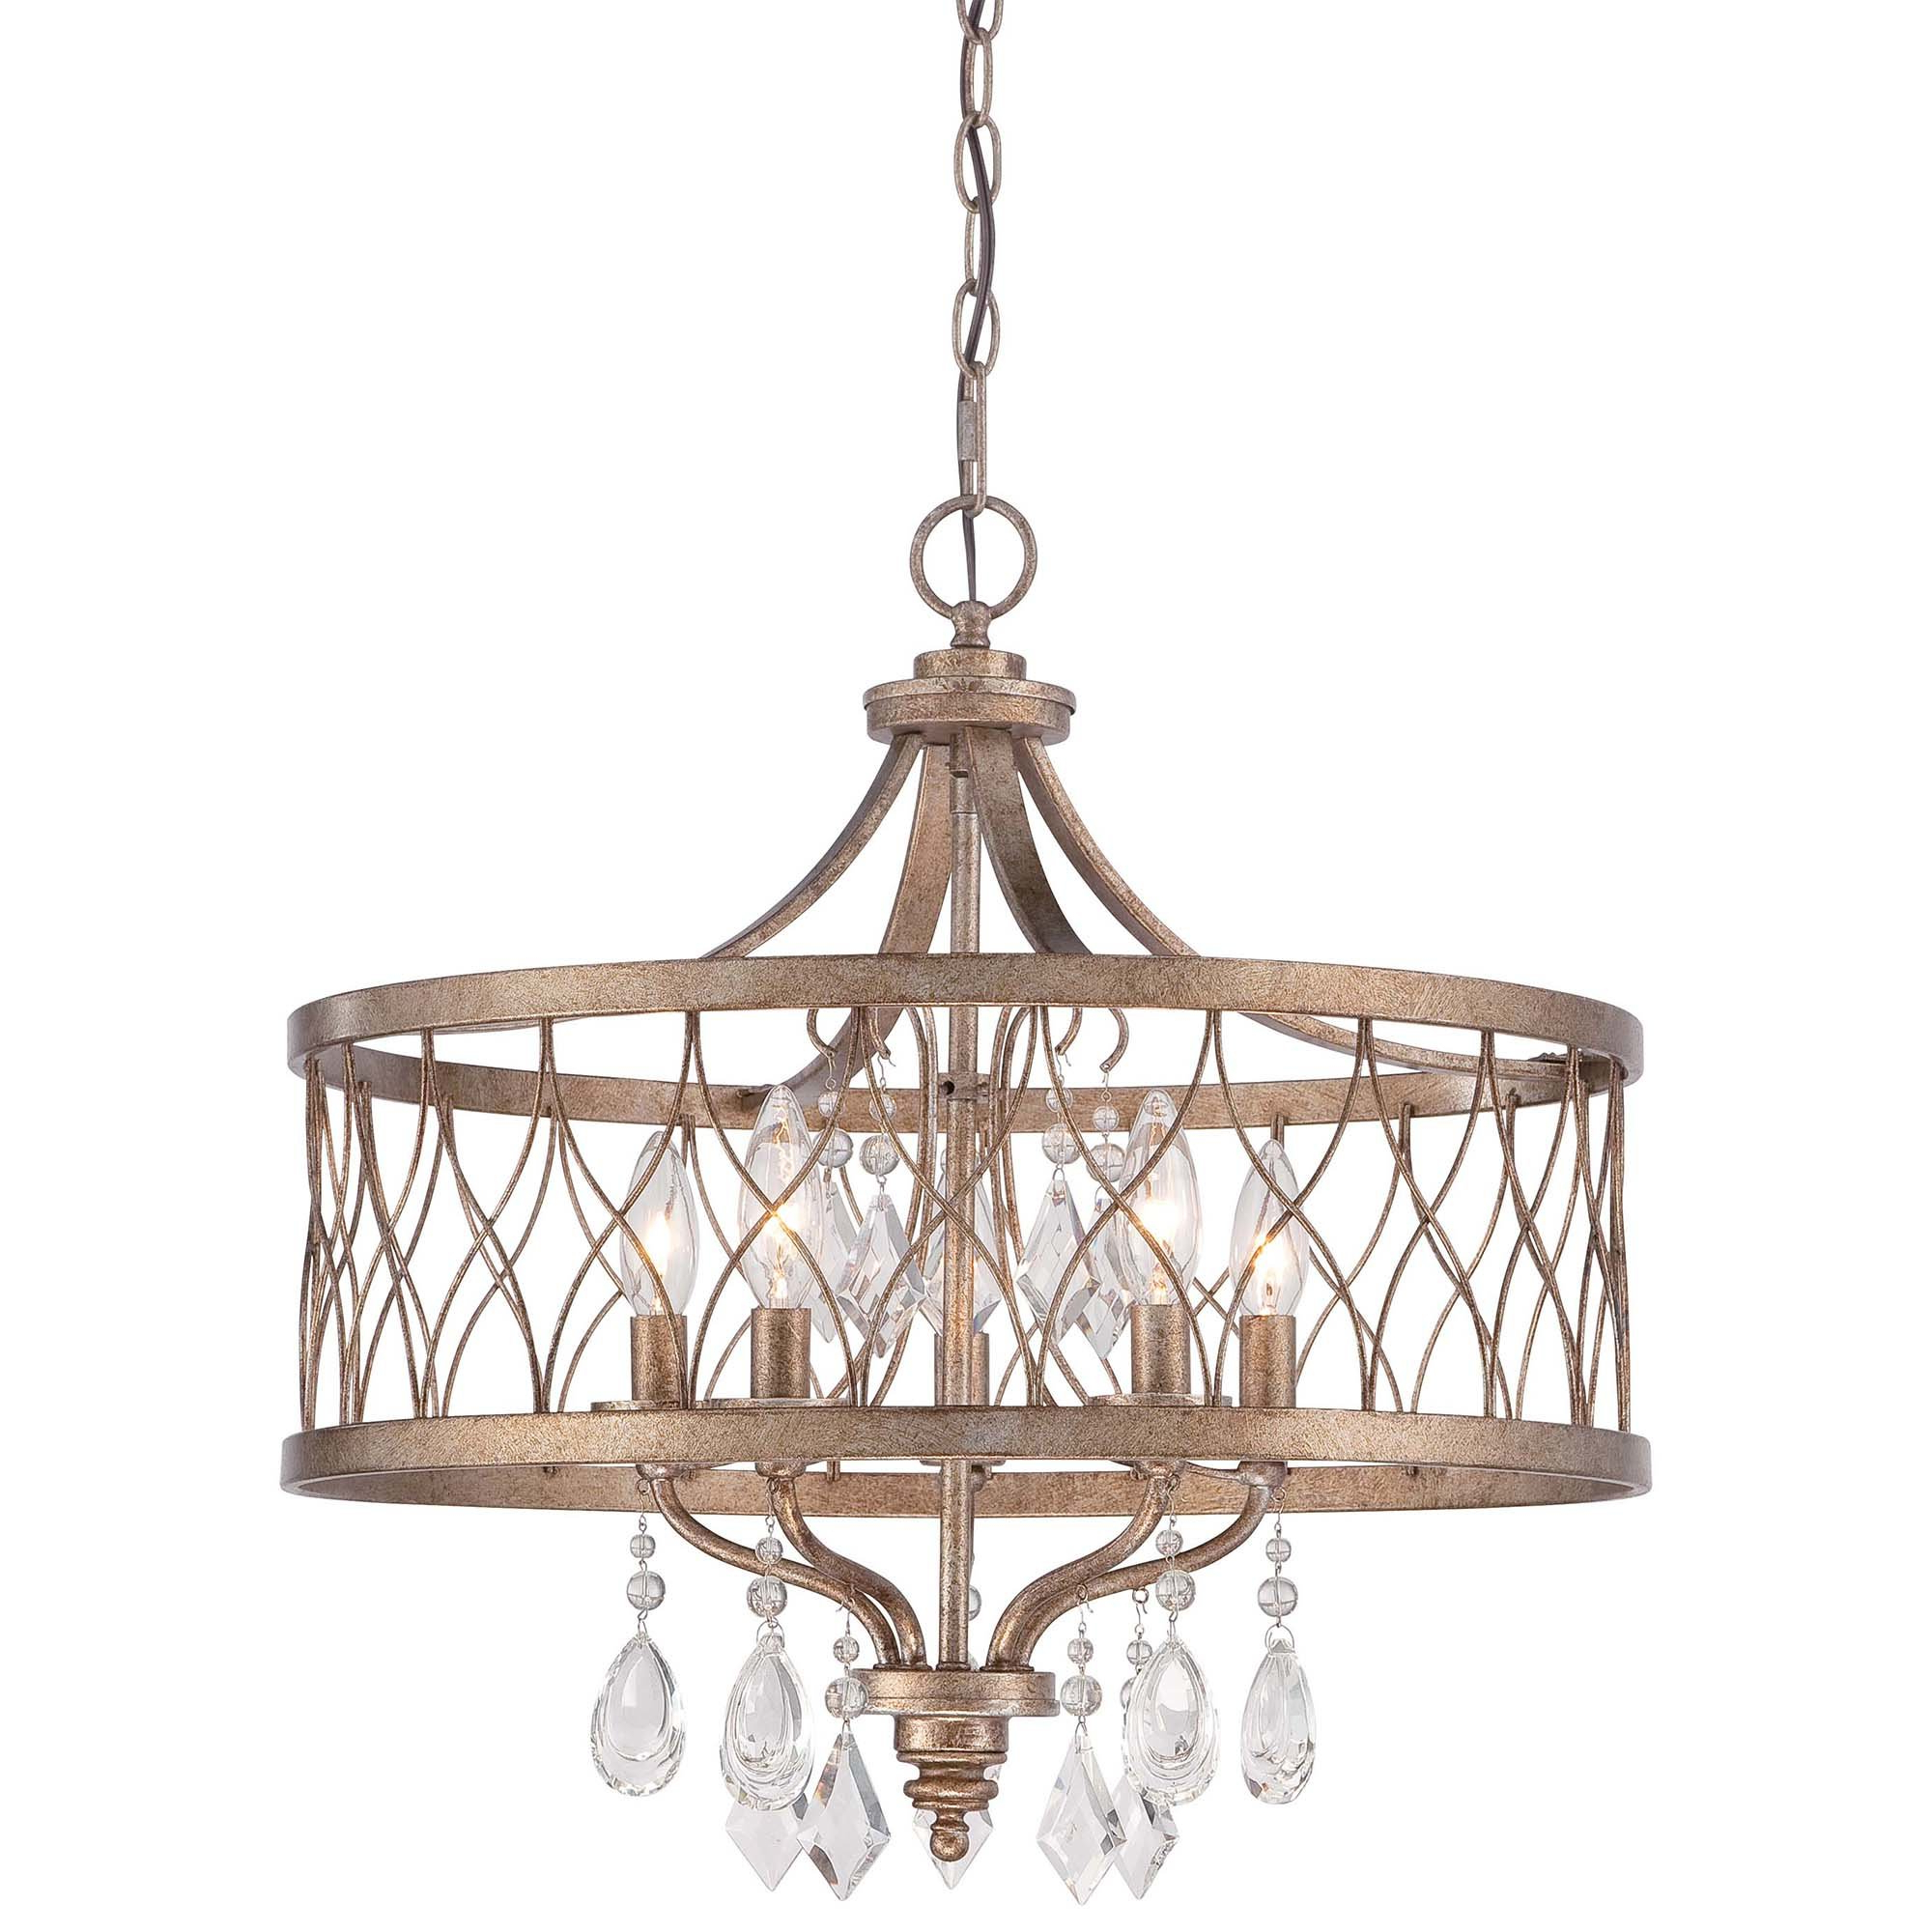 Recent Farmhouse & Rustic Willa Arlo Interiors Chandeliers (View 12 of 25)